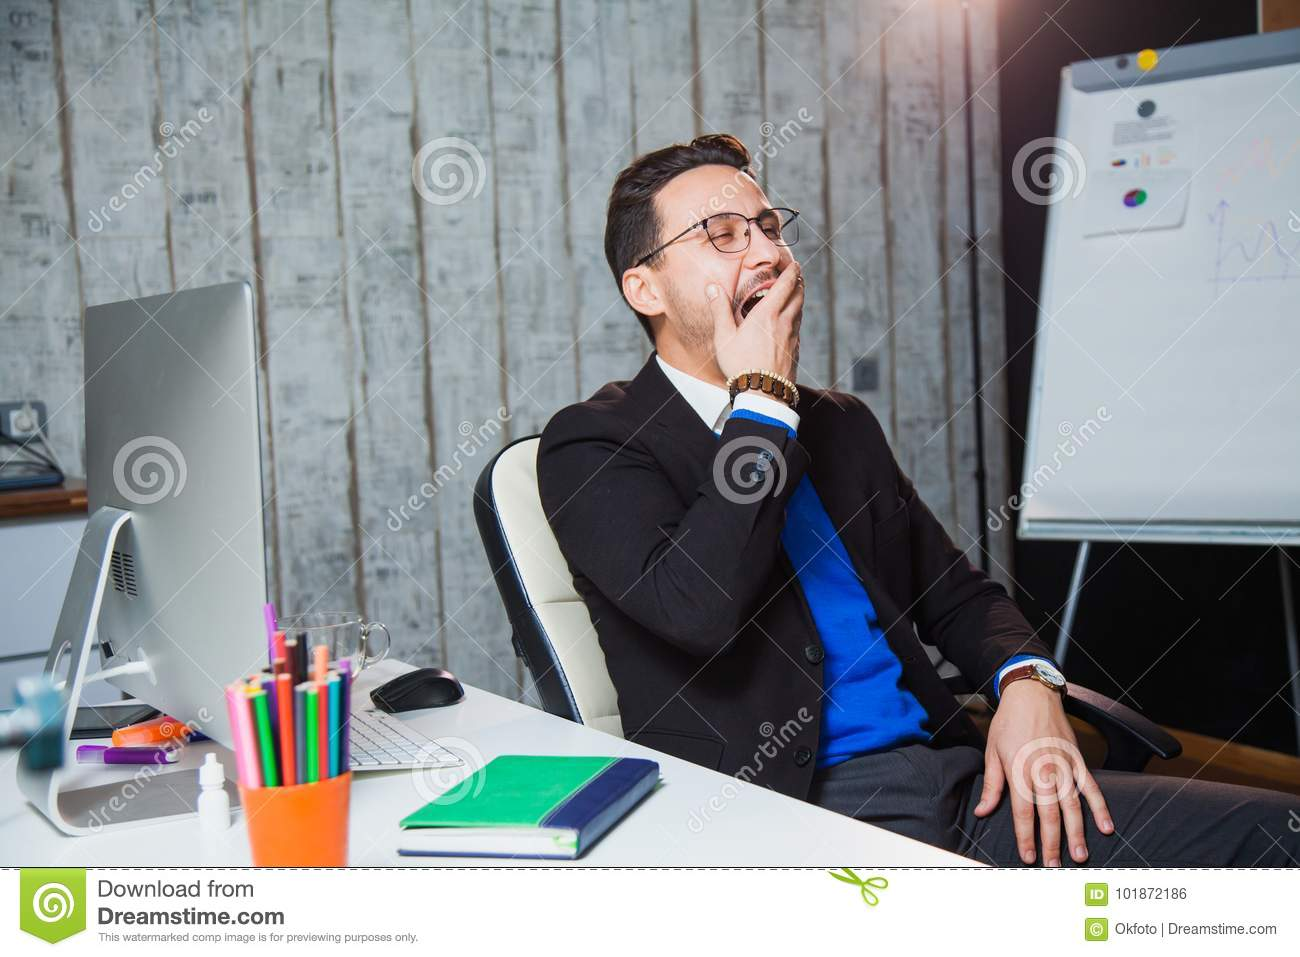 Businessman yawning at office boring job concept.